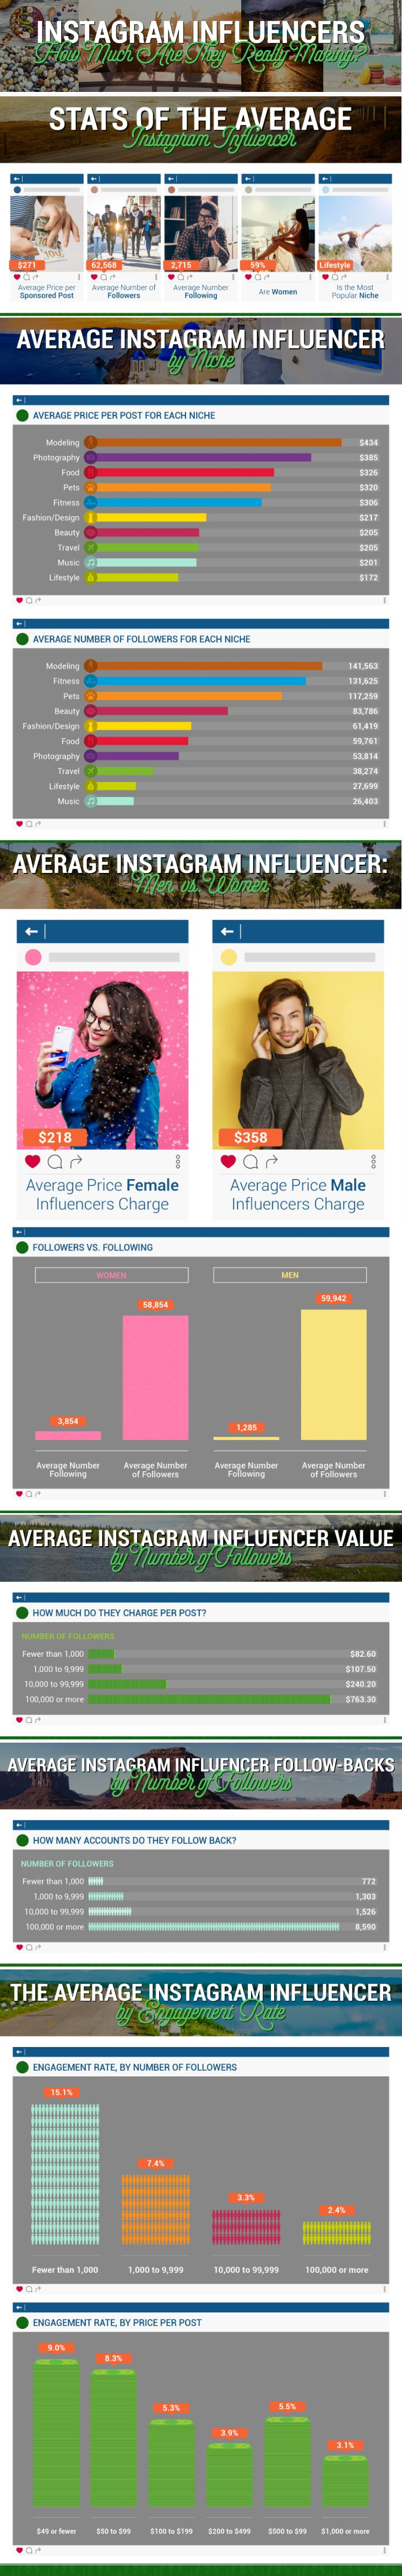 Instagram Influencers: How Much are they Really Making? [Infographic] | Social Media Today